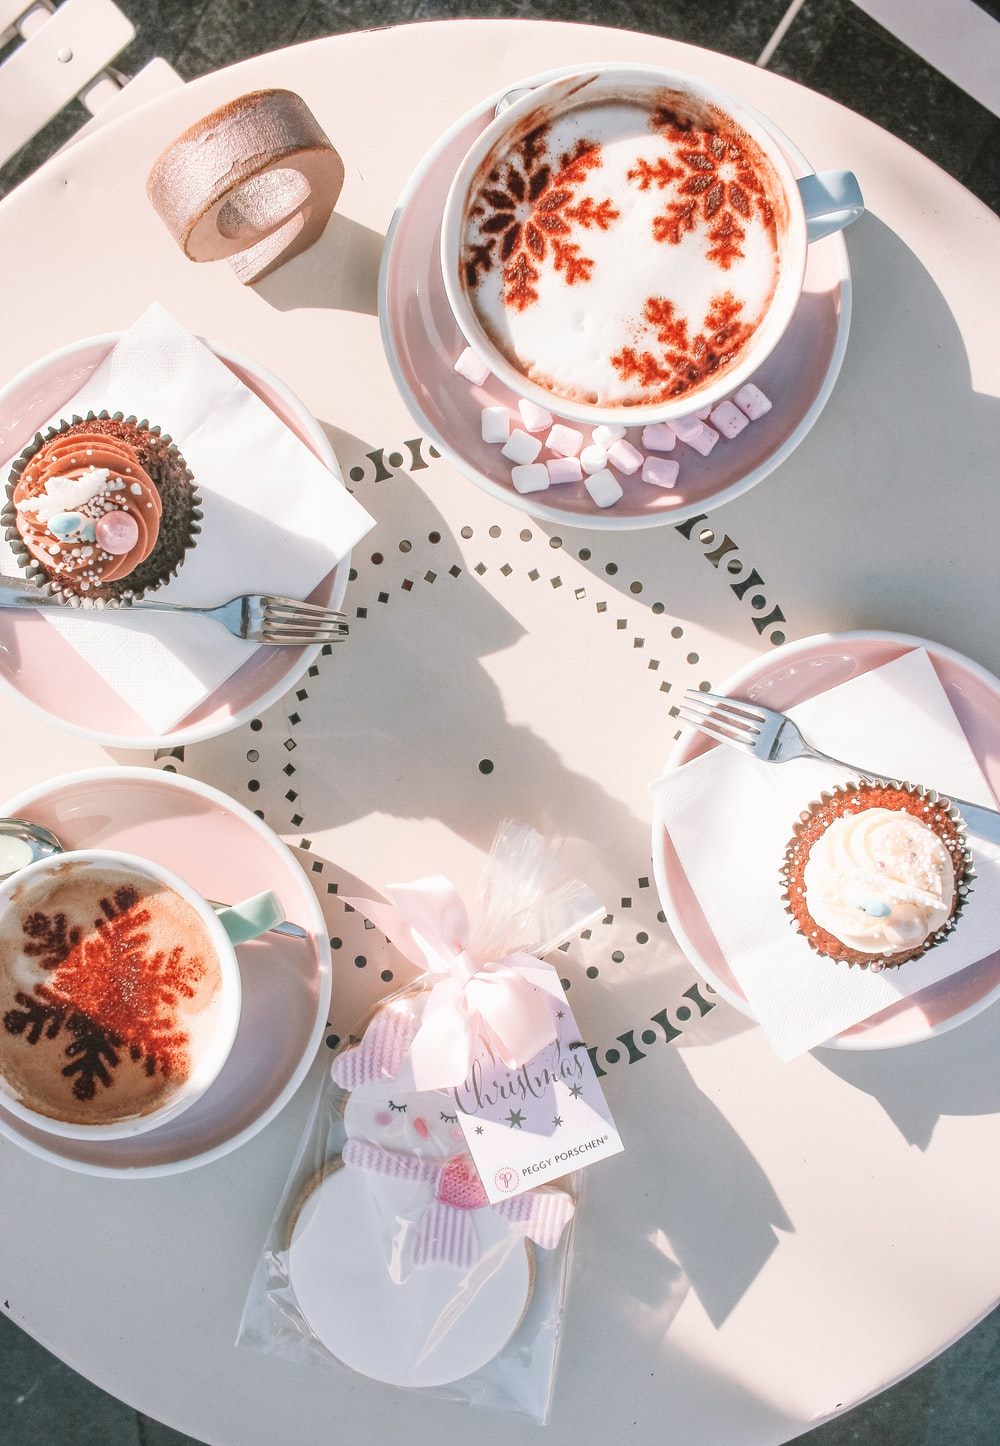 cupcakes and coffee cups at table